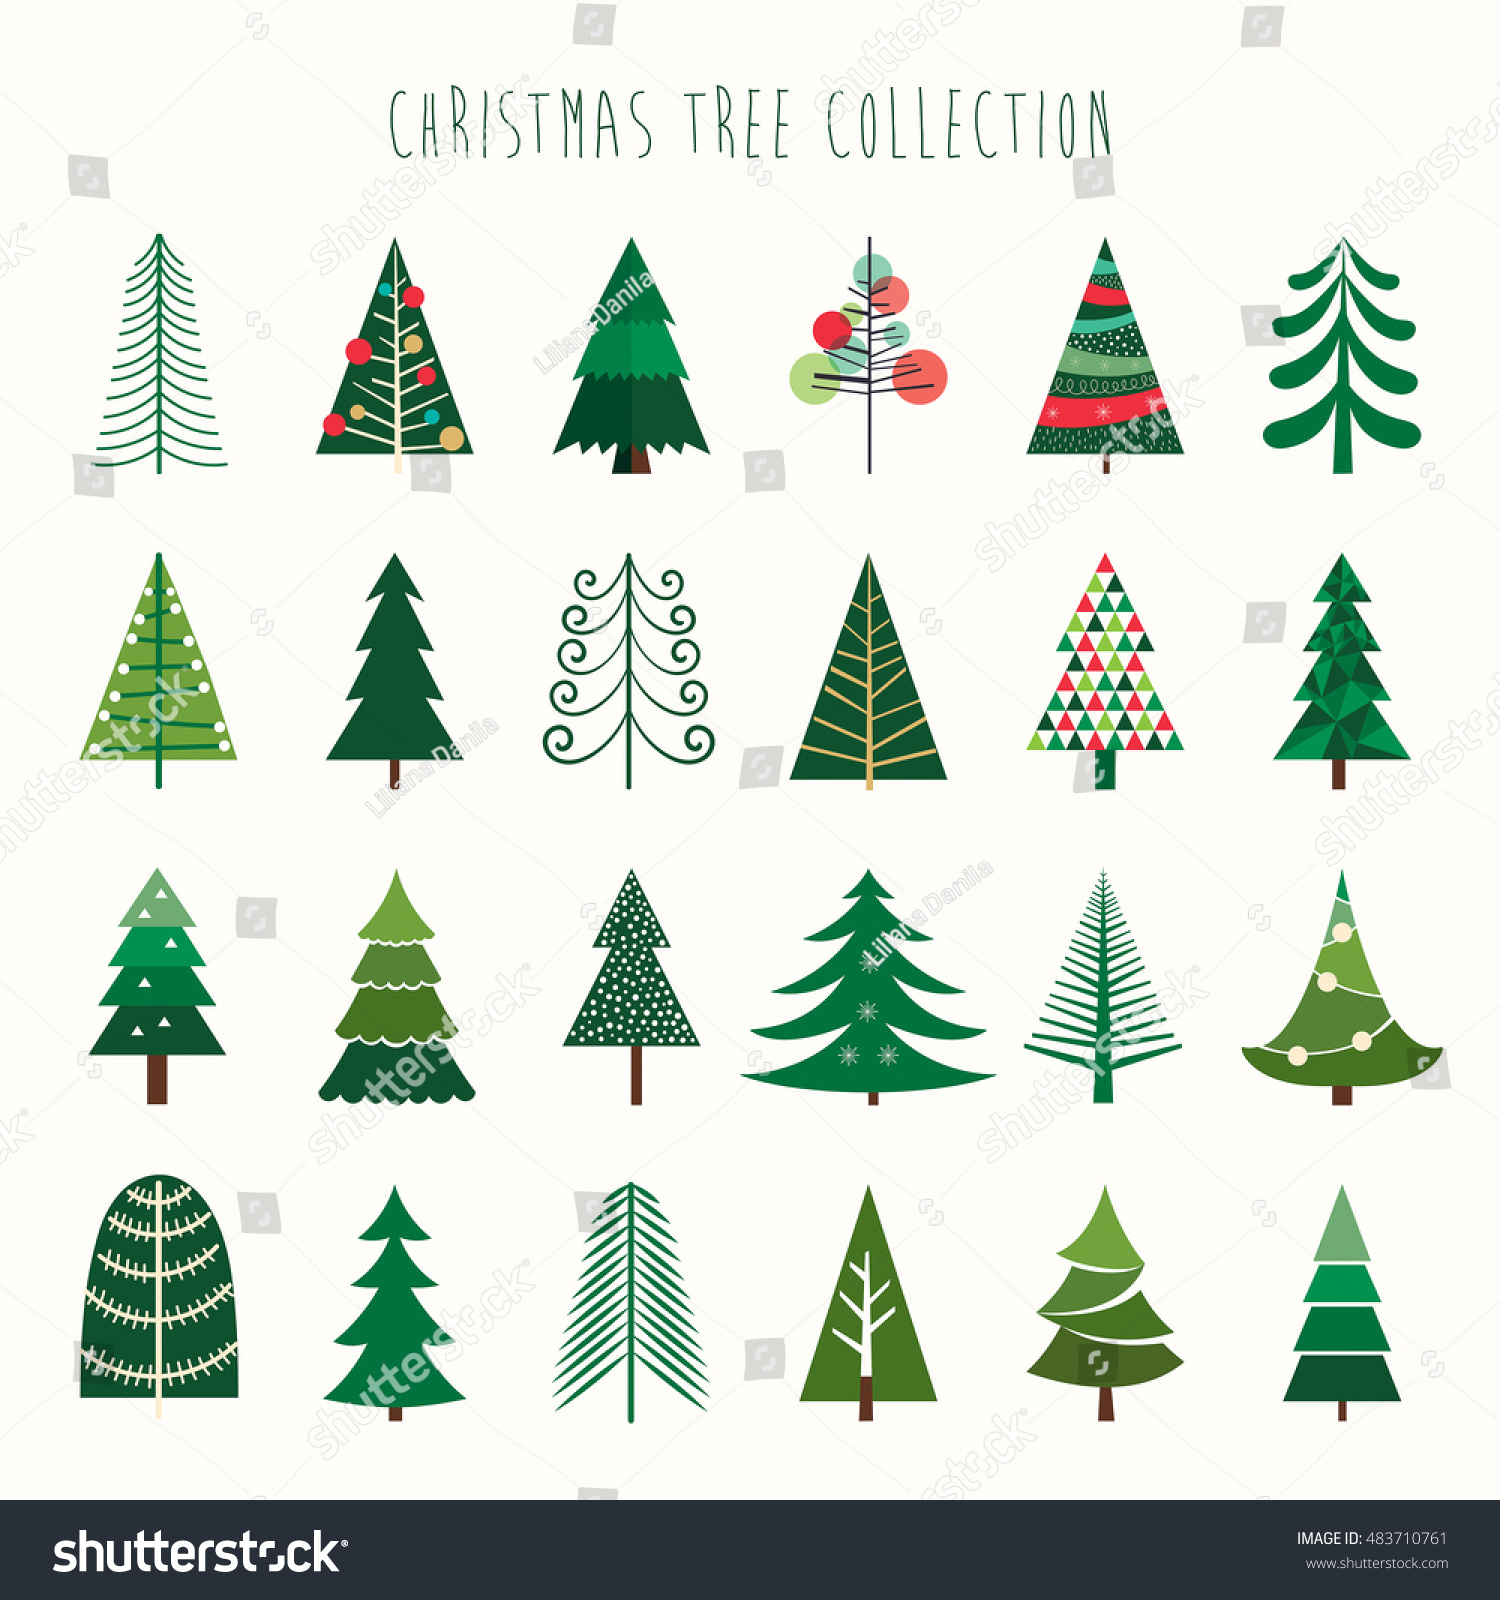 Christmas Tree Collection Trowbridge : Christmas tree collection stock vector illustration